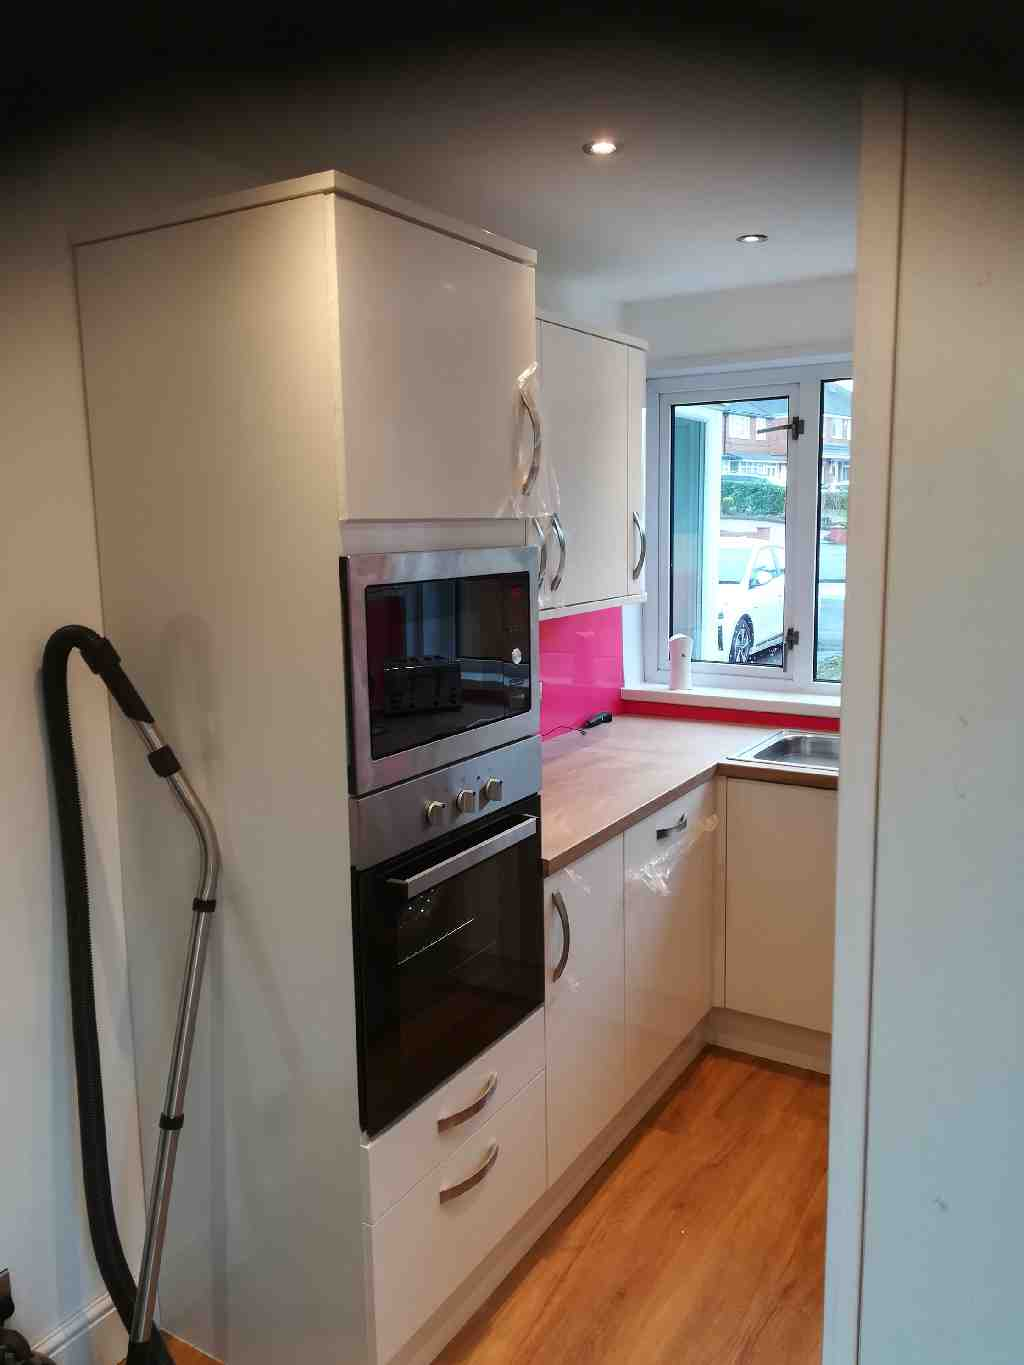 Gallery Kitchens for Visually Impaired Great Barr Birmingham 04